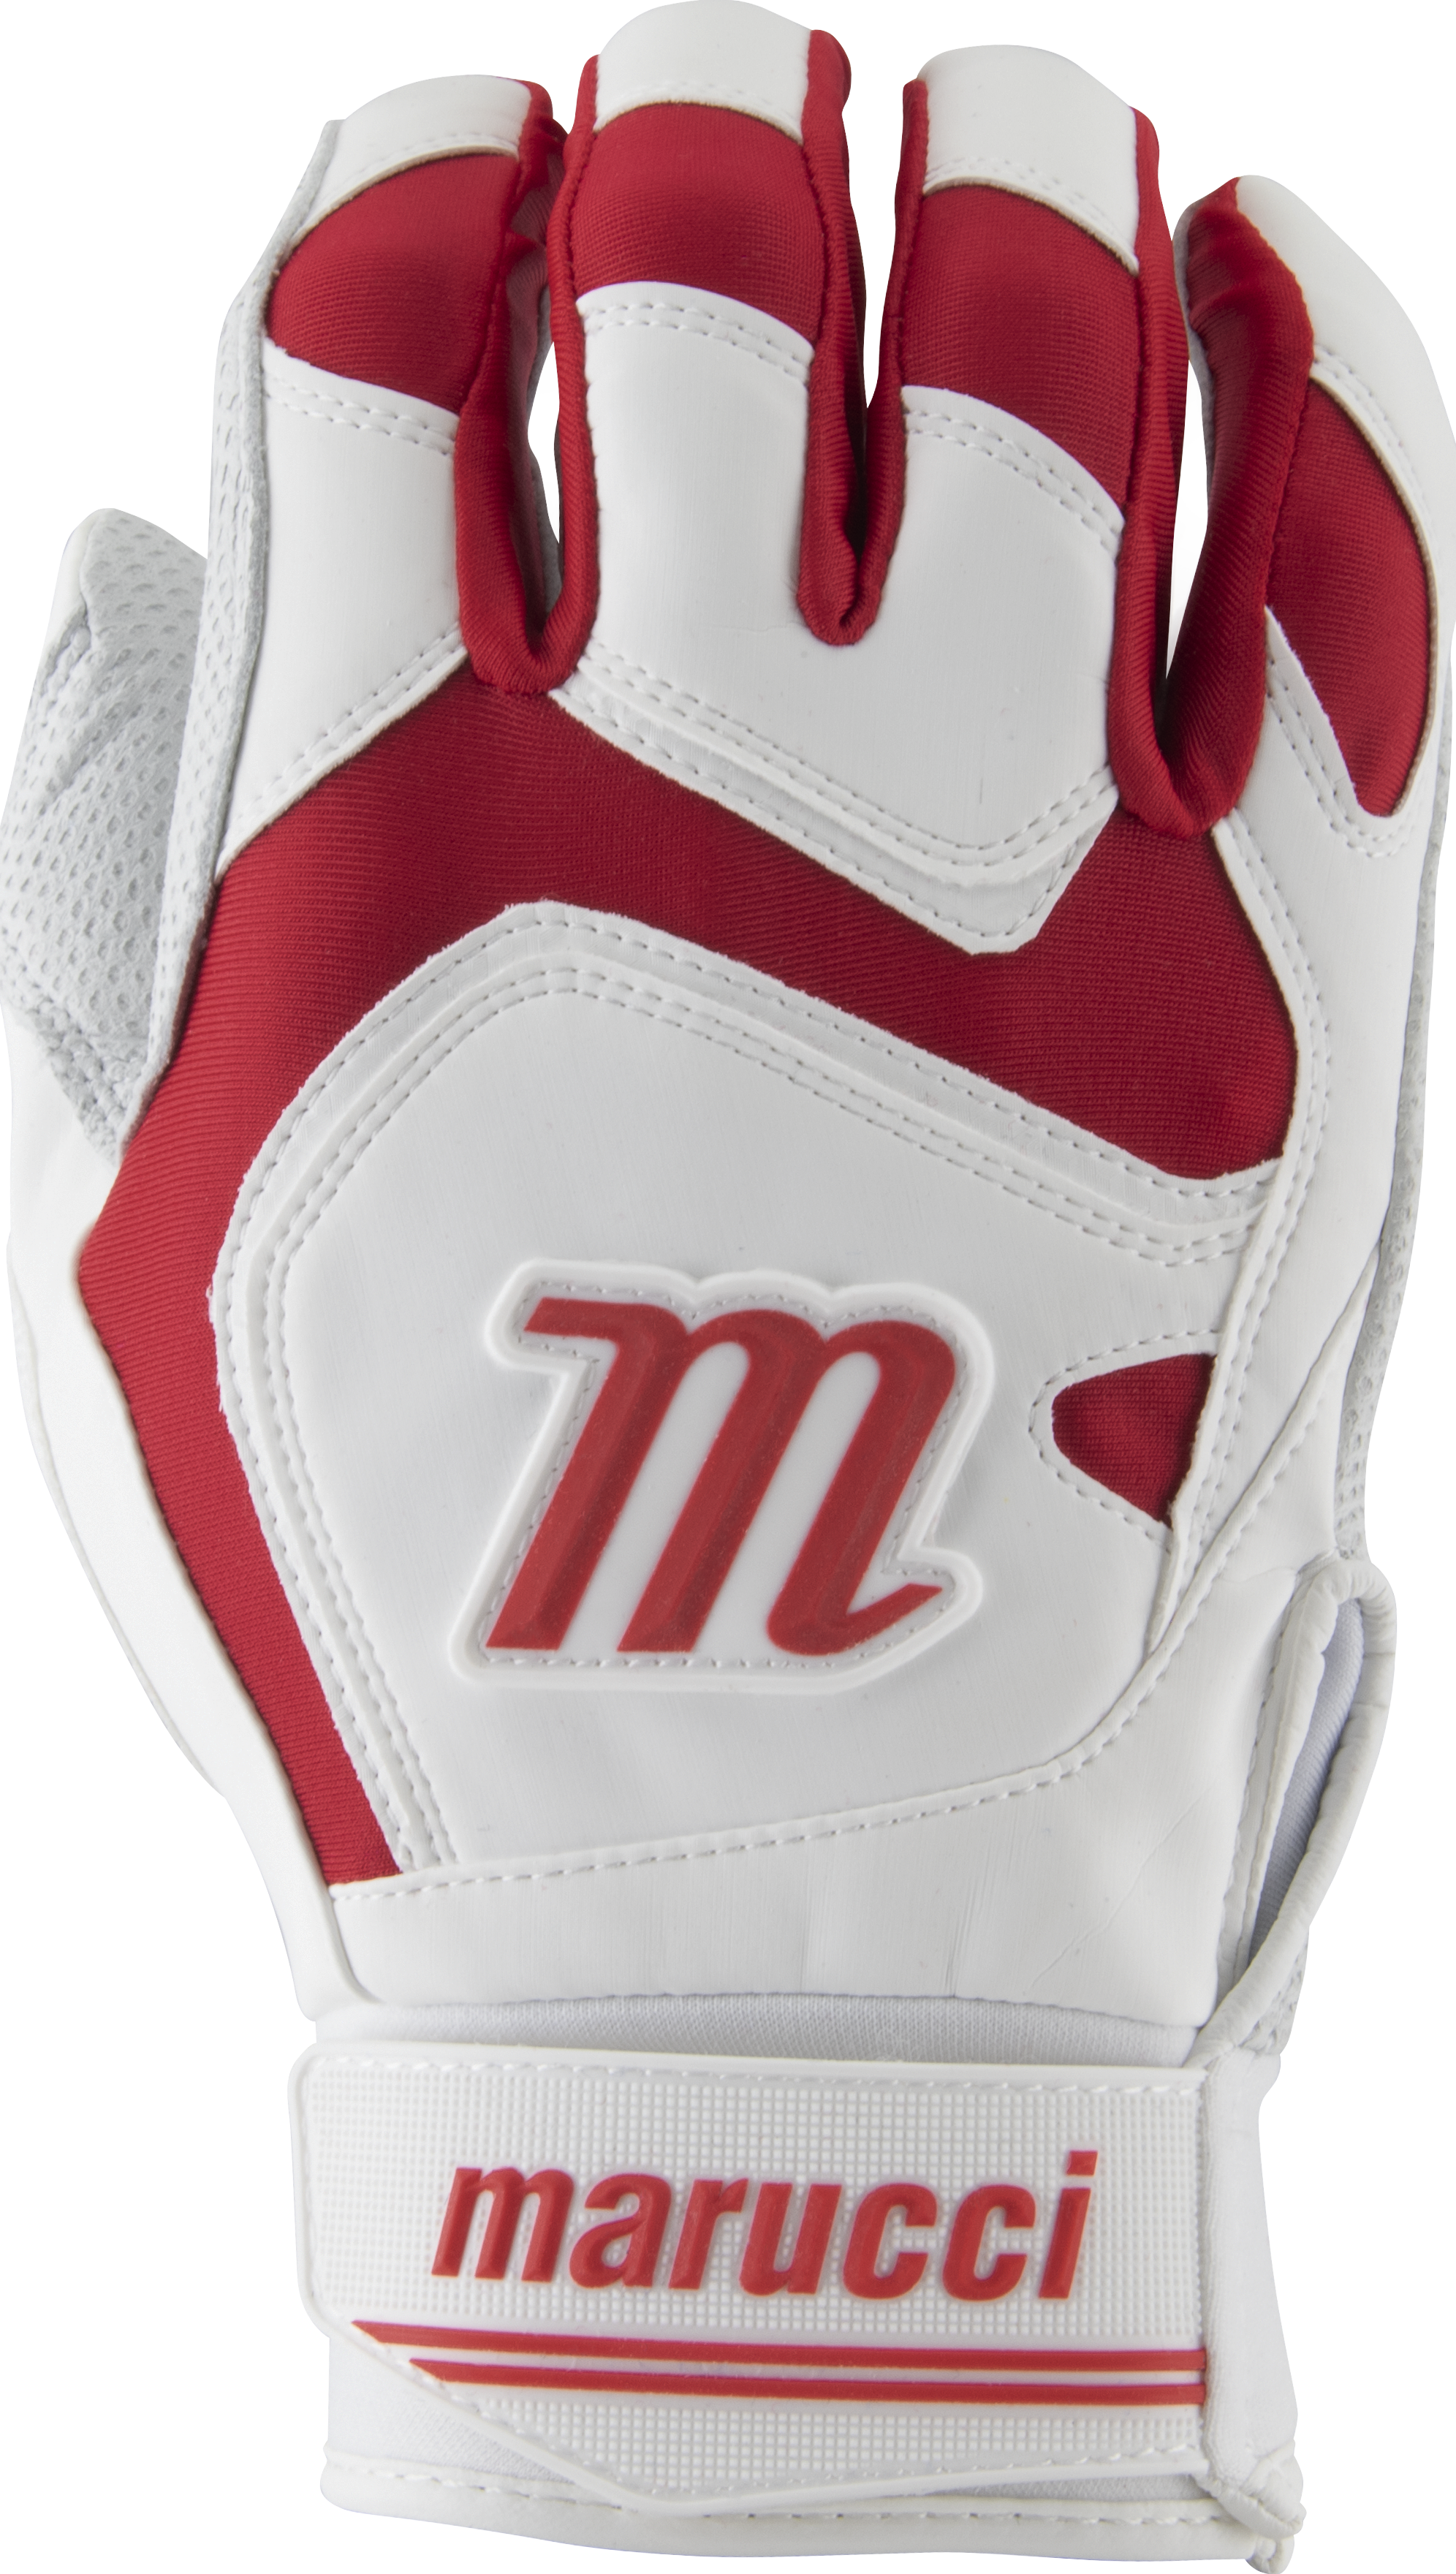 marucci-signature-batting-gloves-mbgsgn2-1-pair-white-red-adult-small MBGSGN2-WR-AS Marucci 849817096703 2019 Model MBGSGN2 Consistency And Craftsmanship Commitment To Quality And Understanding